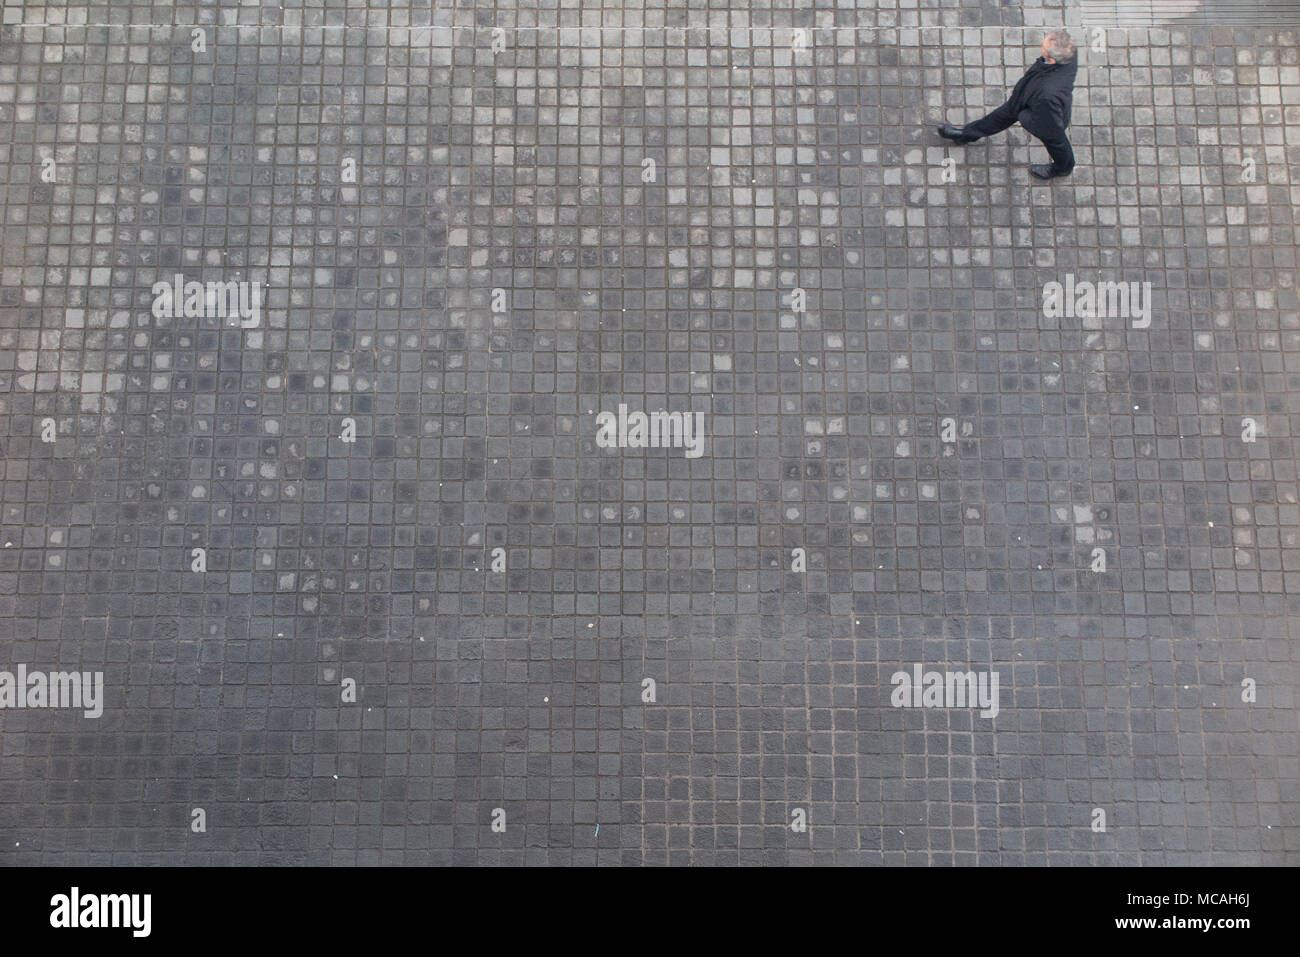 Looking down from high above on a pedestrian, walking along a cobbled pavement - Stock Image